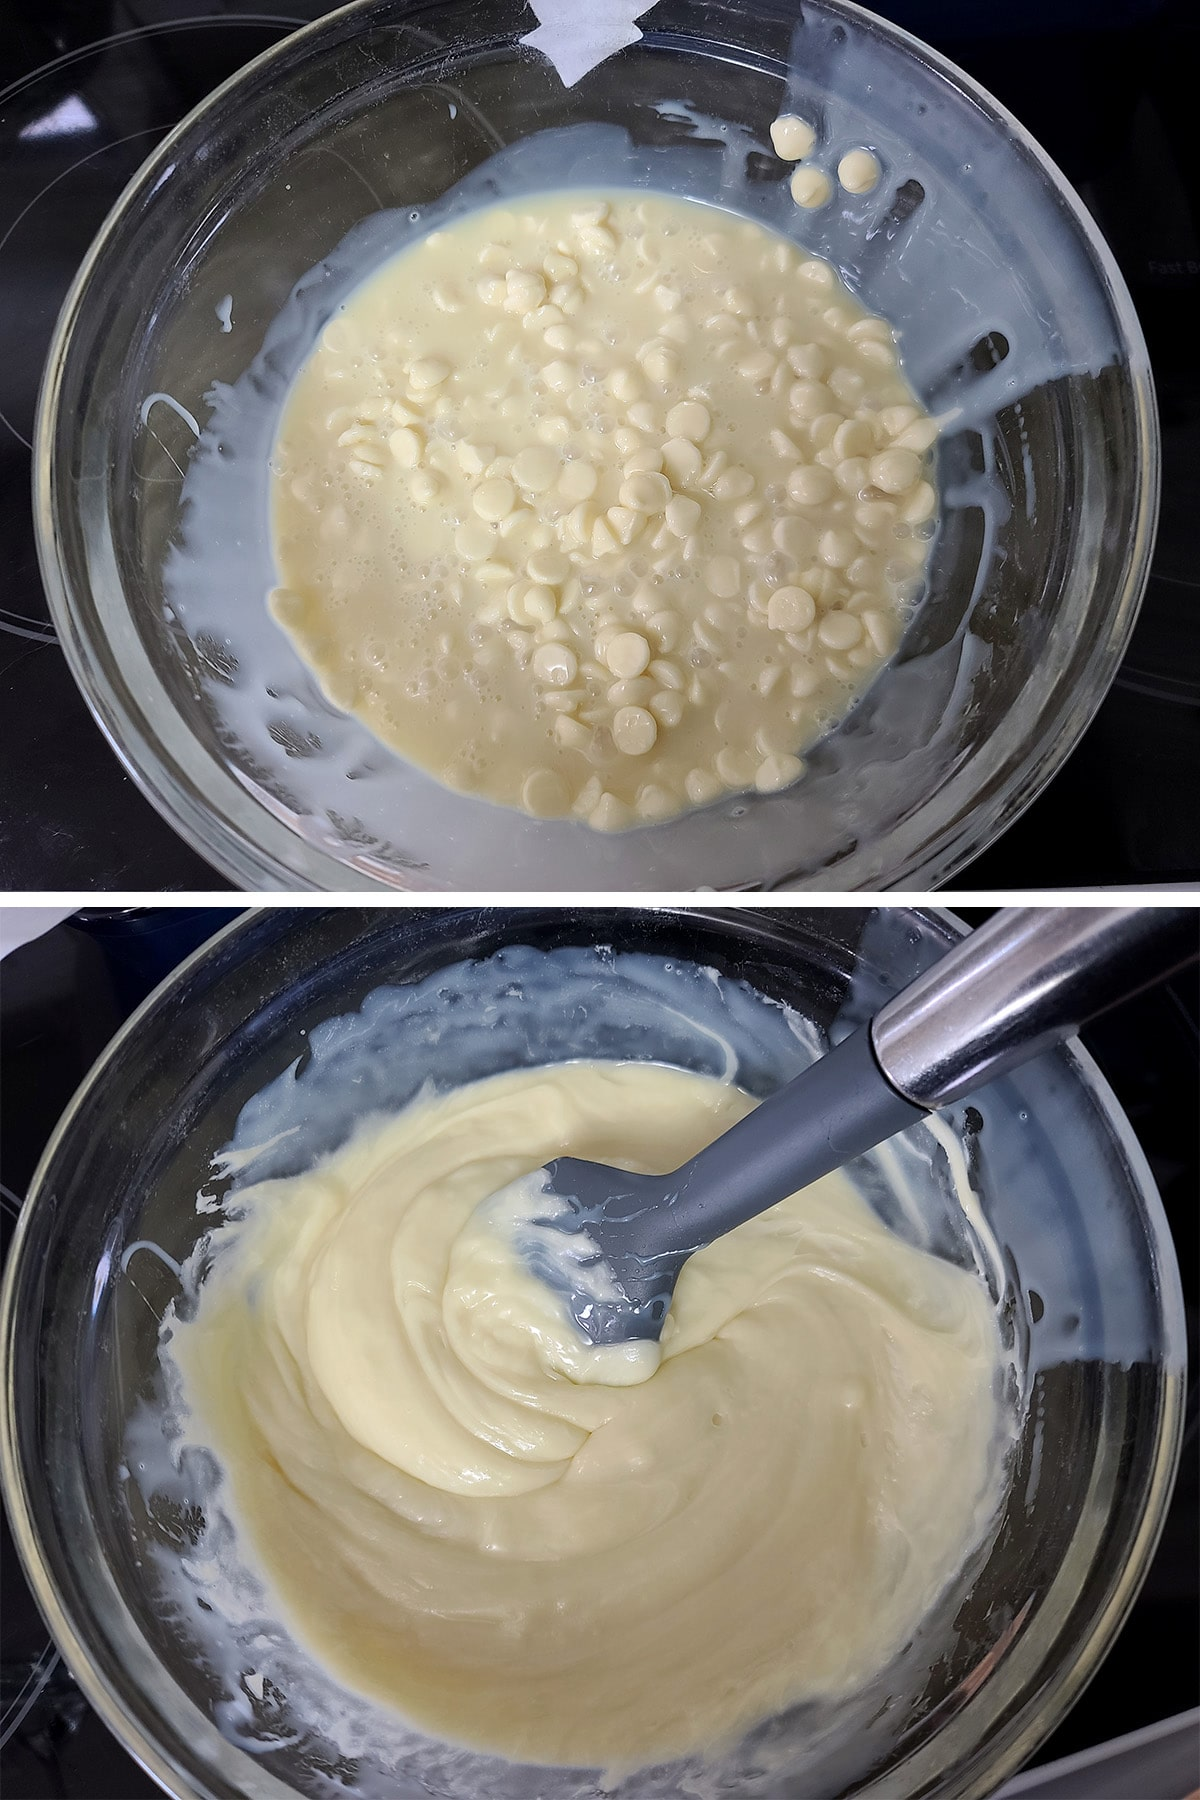 White chocolate chips and sweetened condensed milk being mixed in a glass bowl.